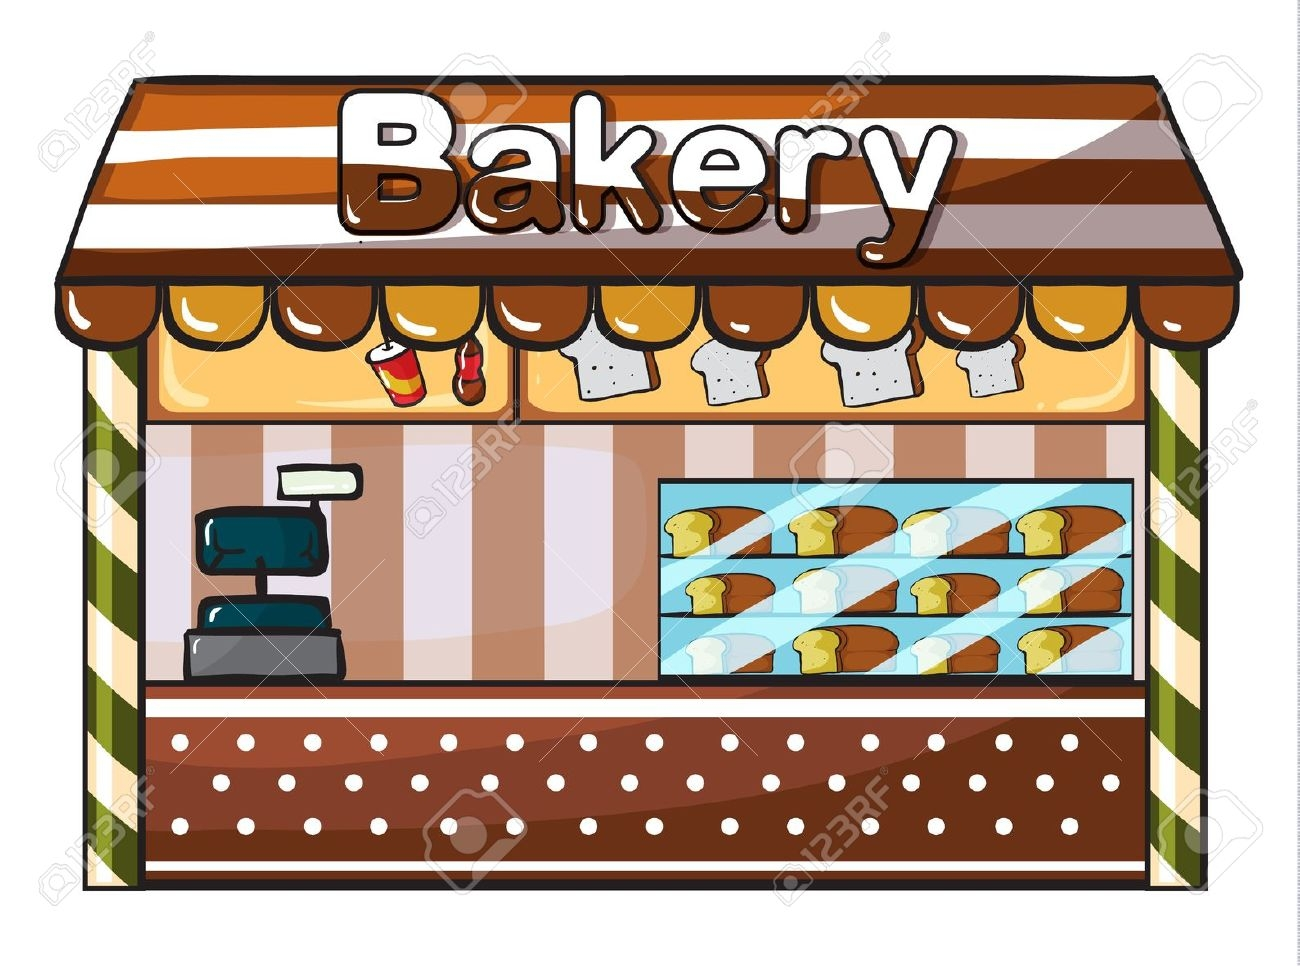 Bakery clipart - Clipground